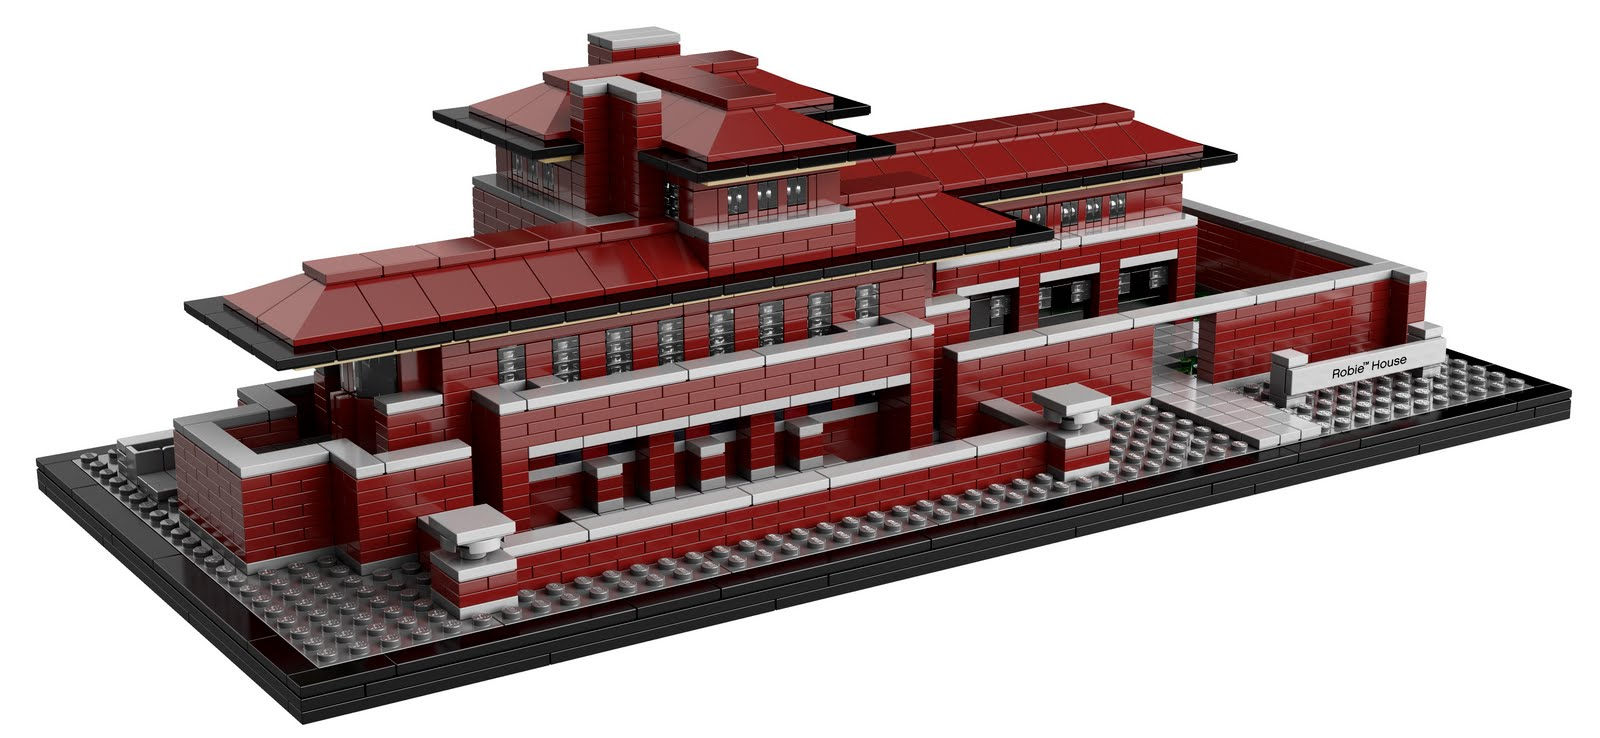 lego gossip 140711 lego 21010 robie house picture. Black Bedroom Furniture Sets. Home Design Ideas